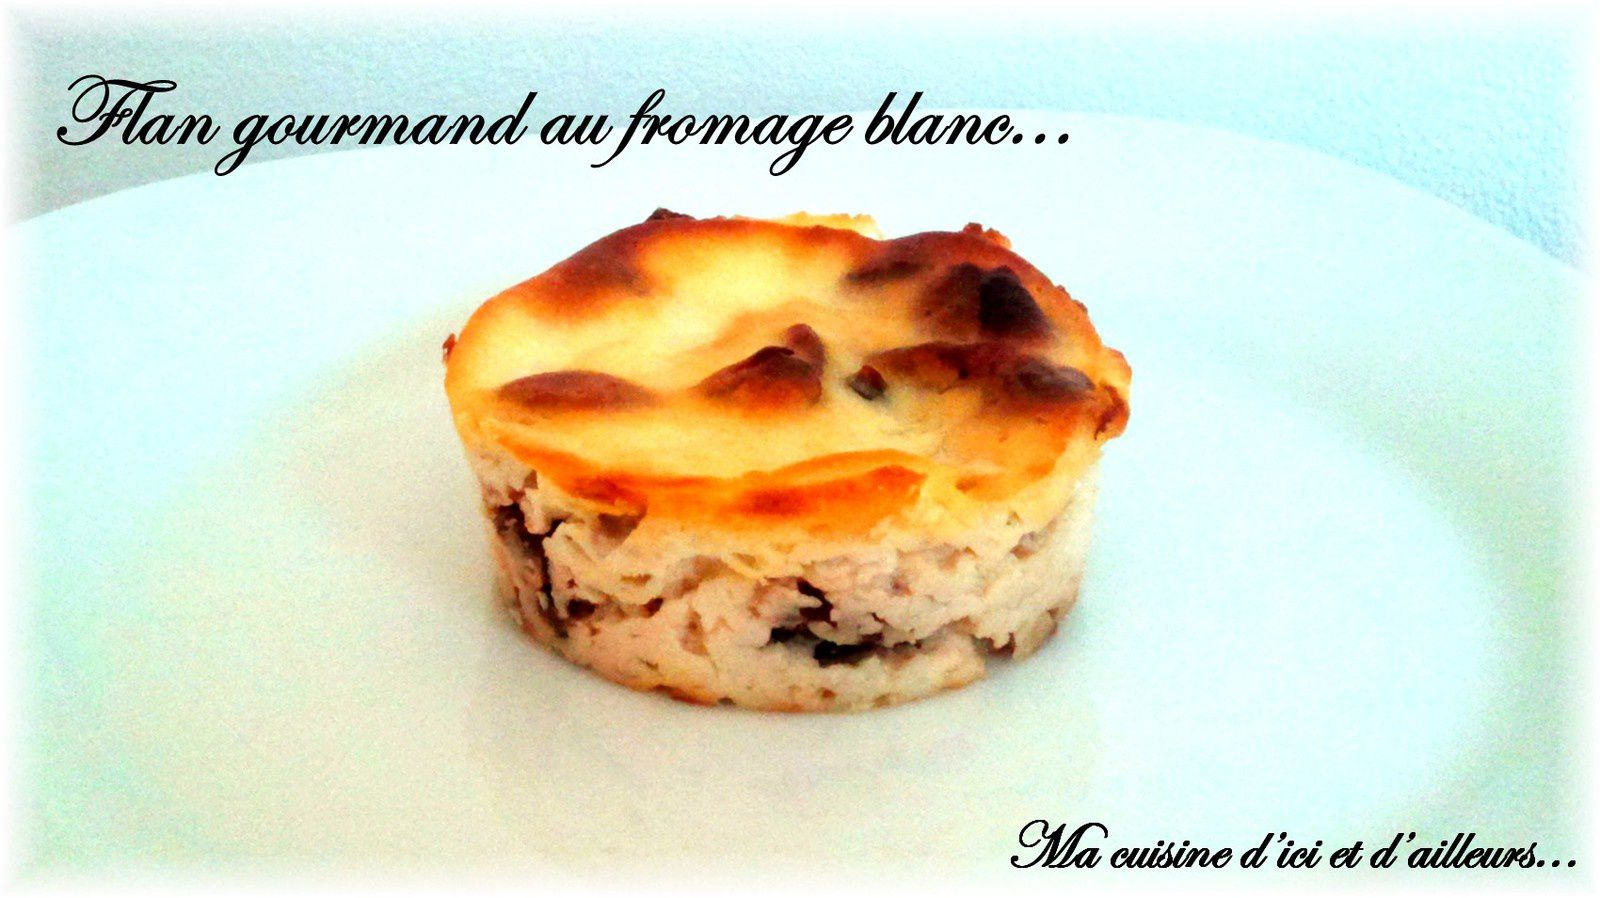 Petits flans gourmands au fromage blanc...